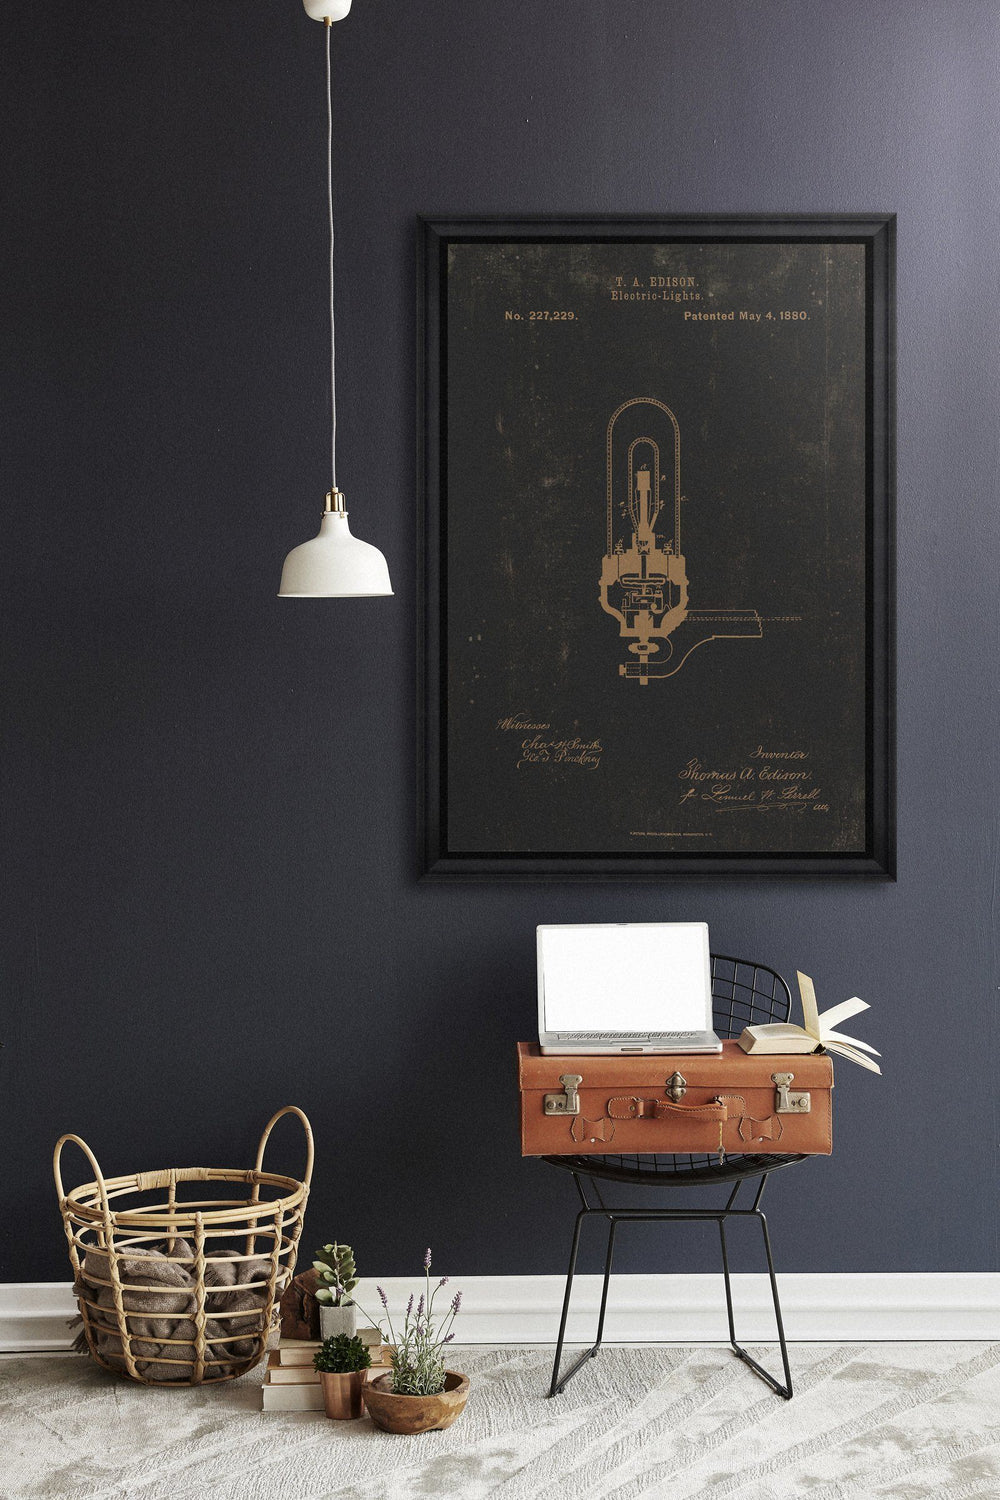 Wall Art - Edison Electric Light